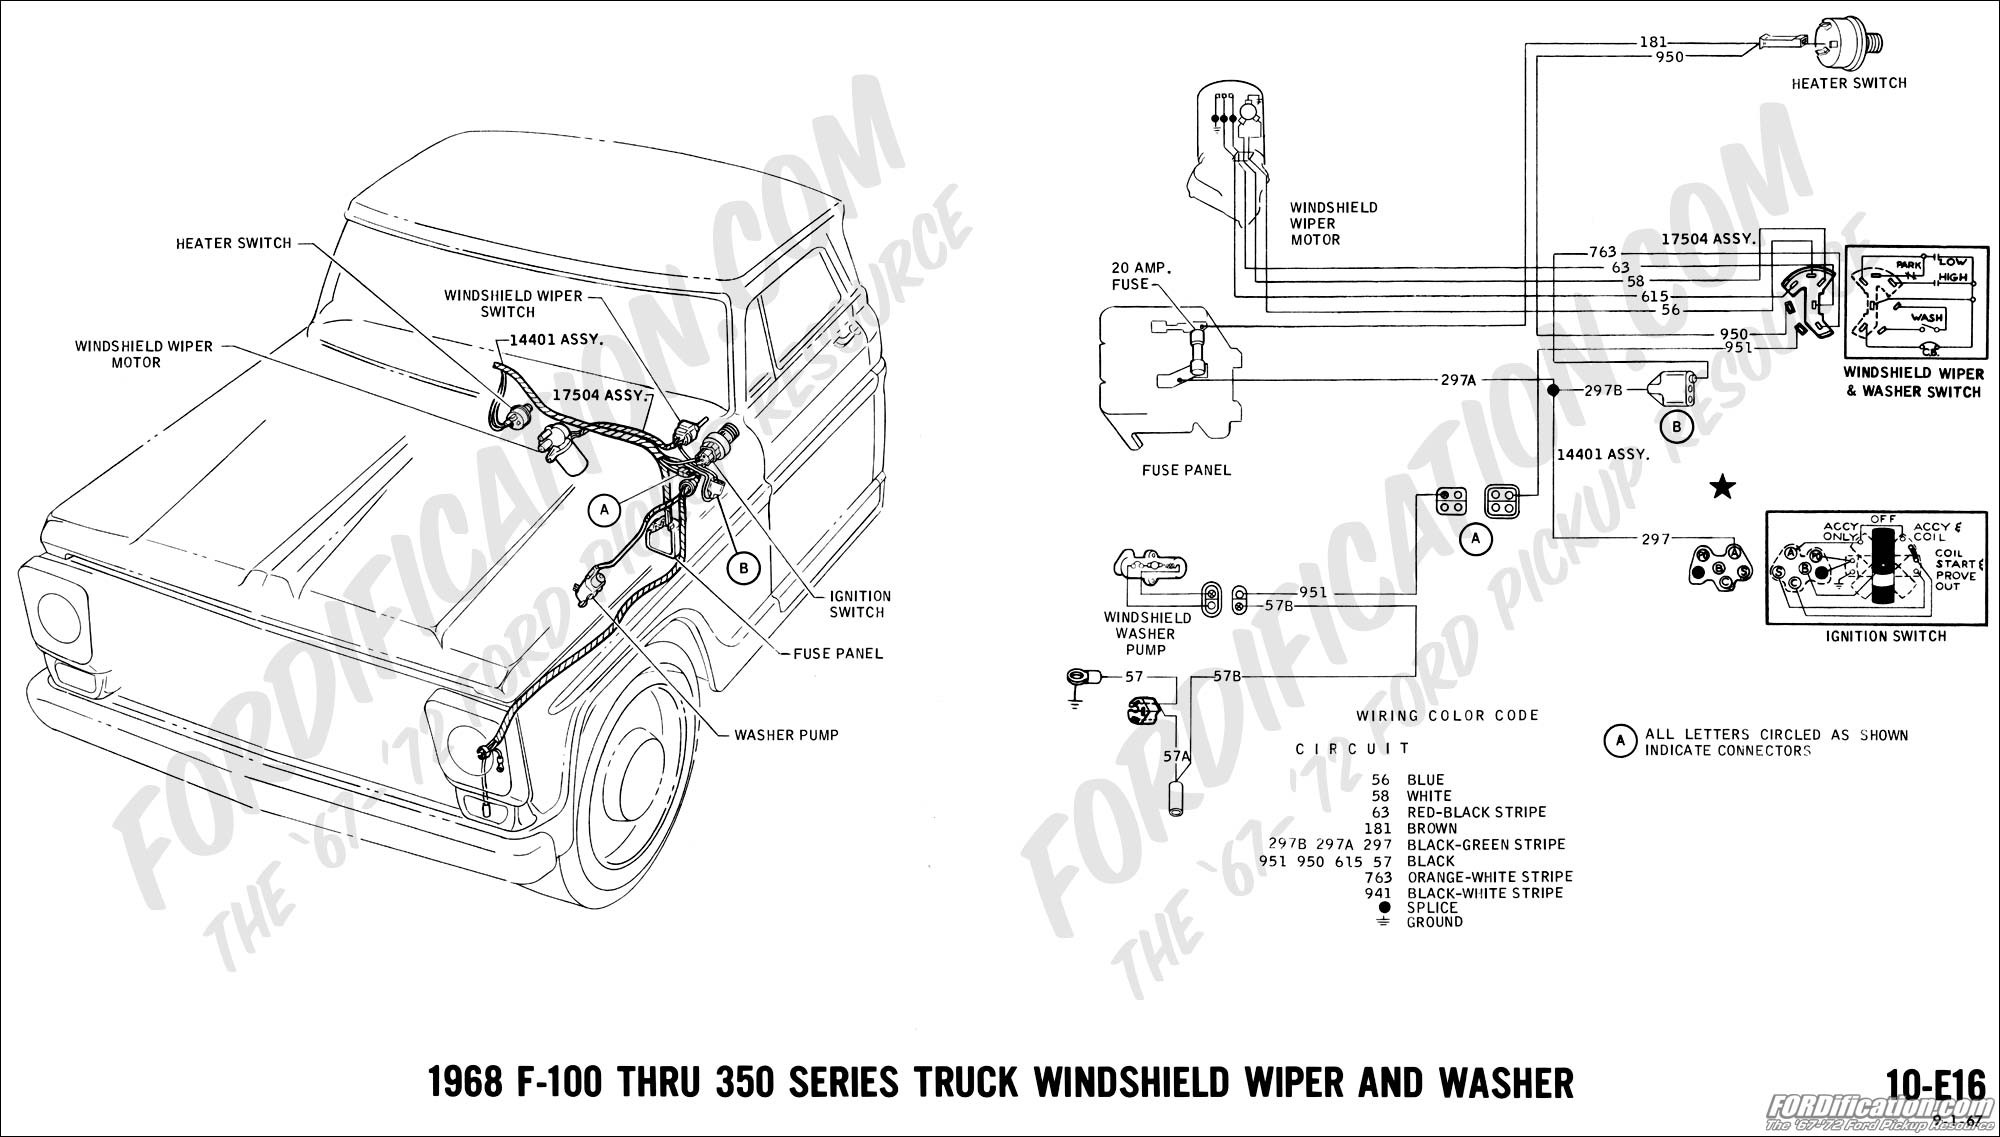 1994 toyota Pickup Wiring Diagram ford Truck Technical Drawings and Schematics Section H Wiring Of 1994 toyota Pickup Wiring Diagram